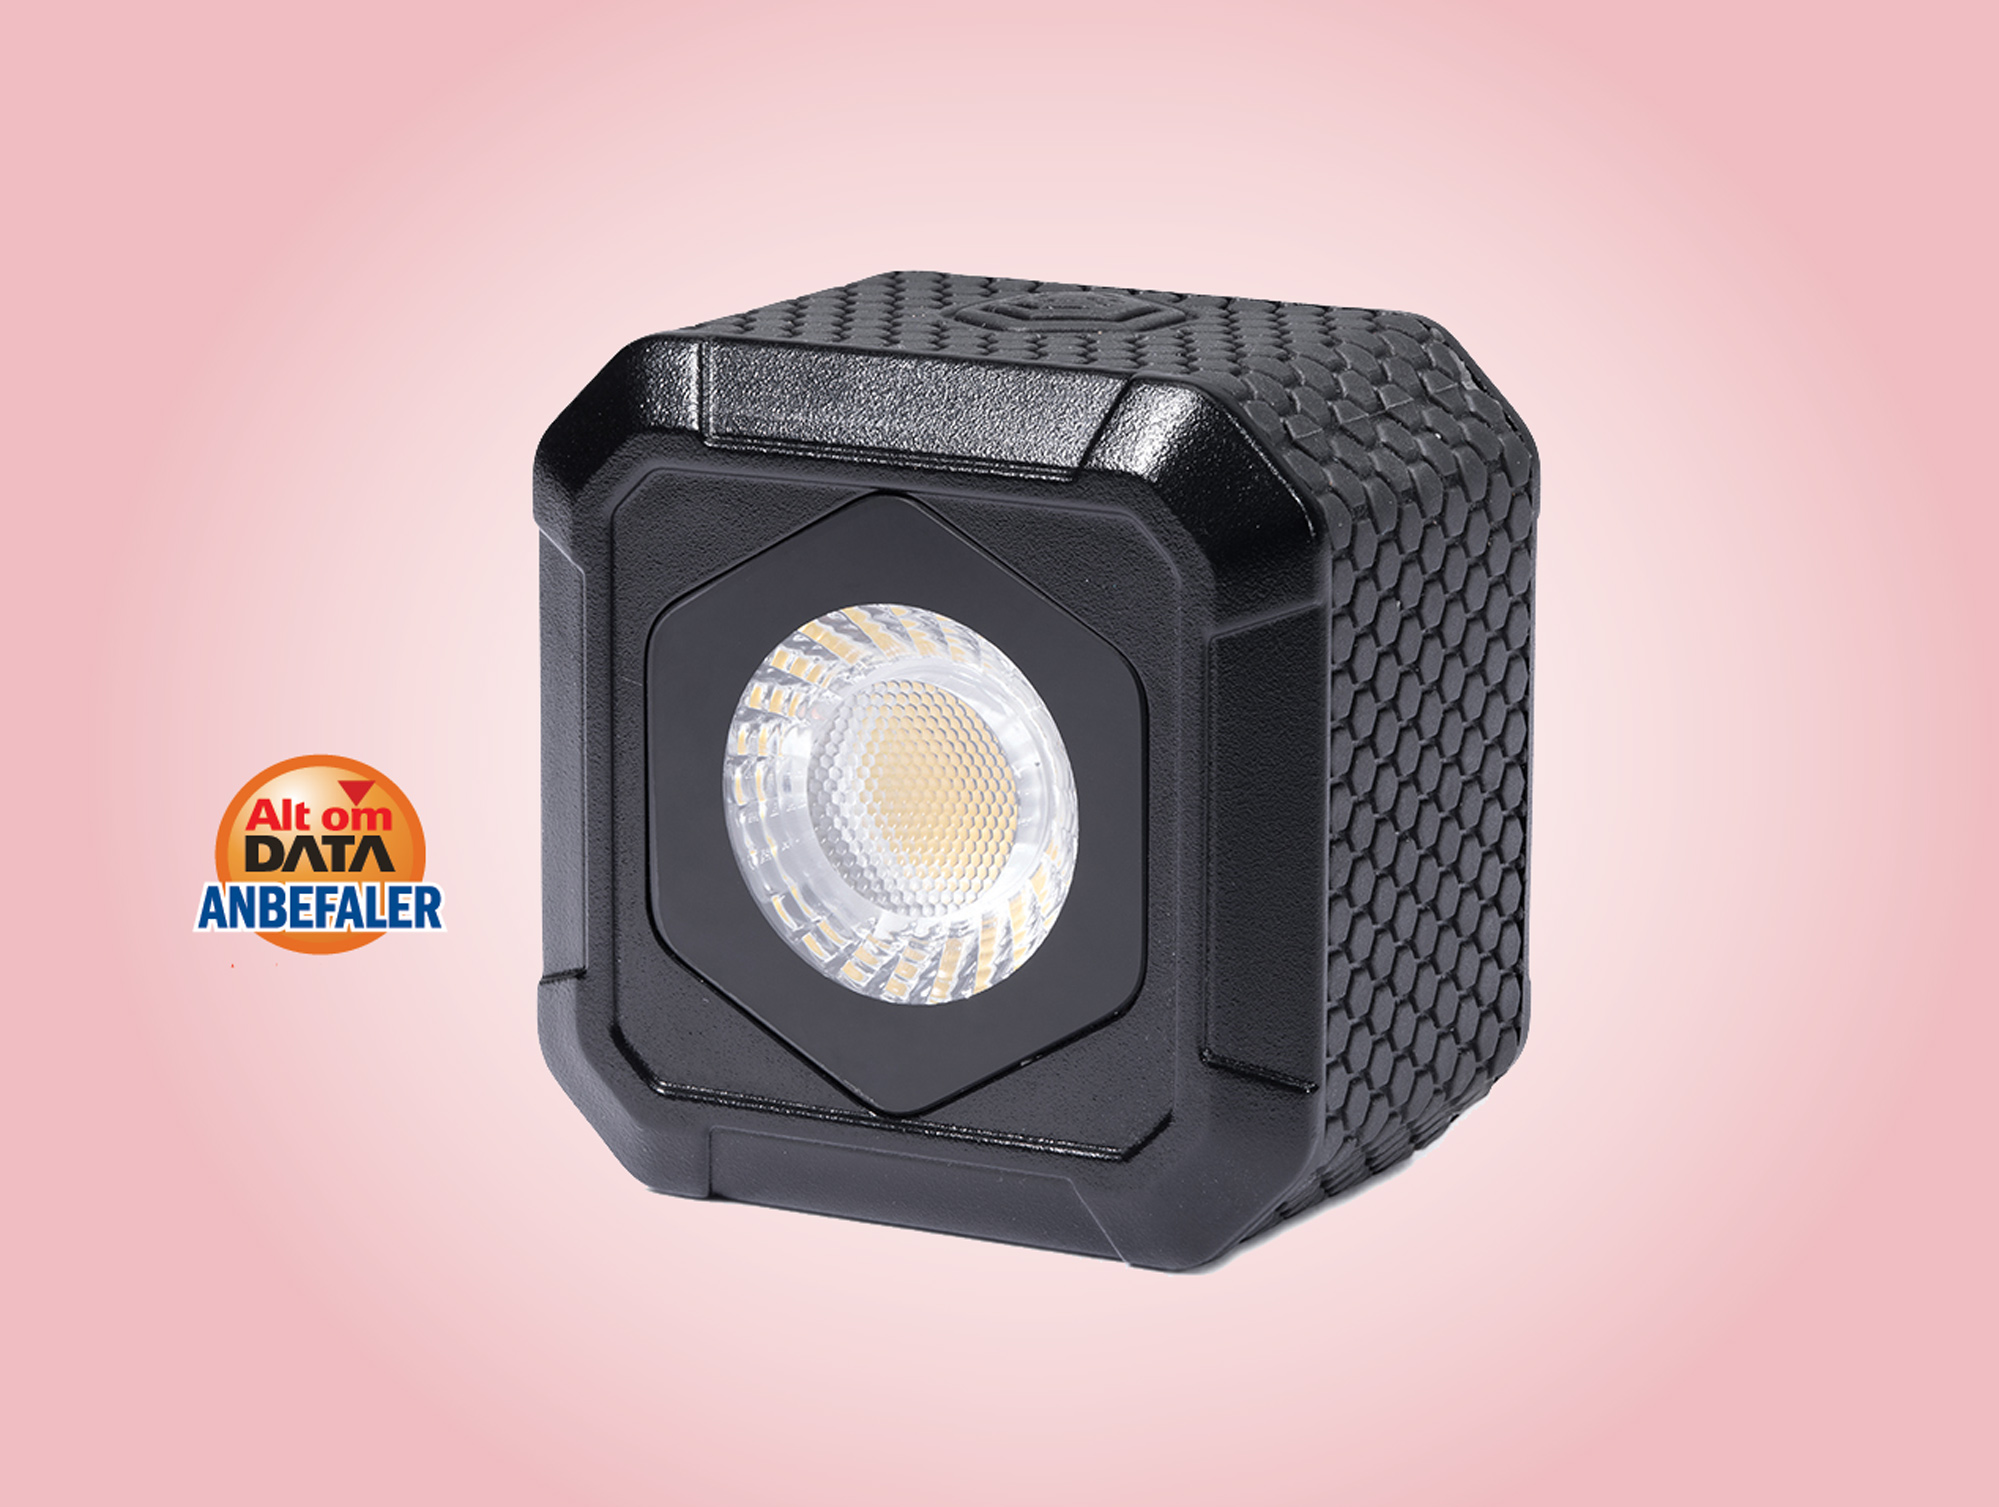 Lume Cube AIR [TEST]: Tag fotolampen i lommen